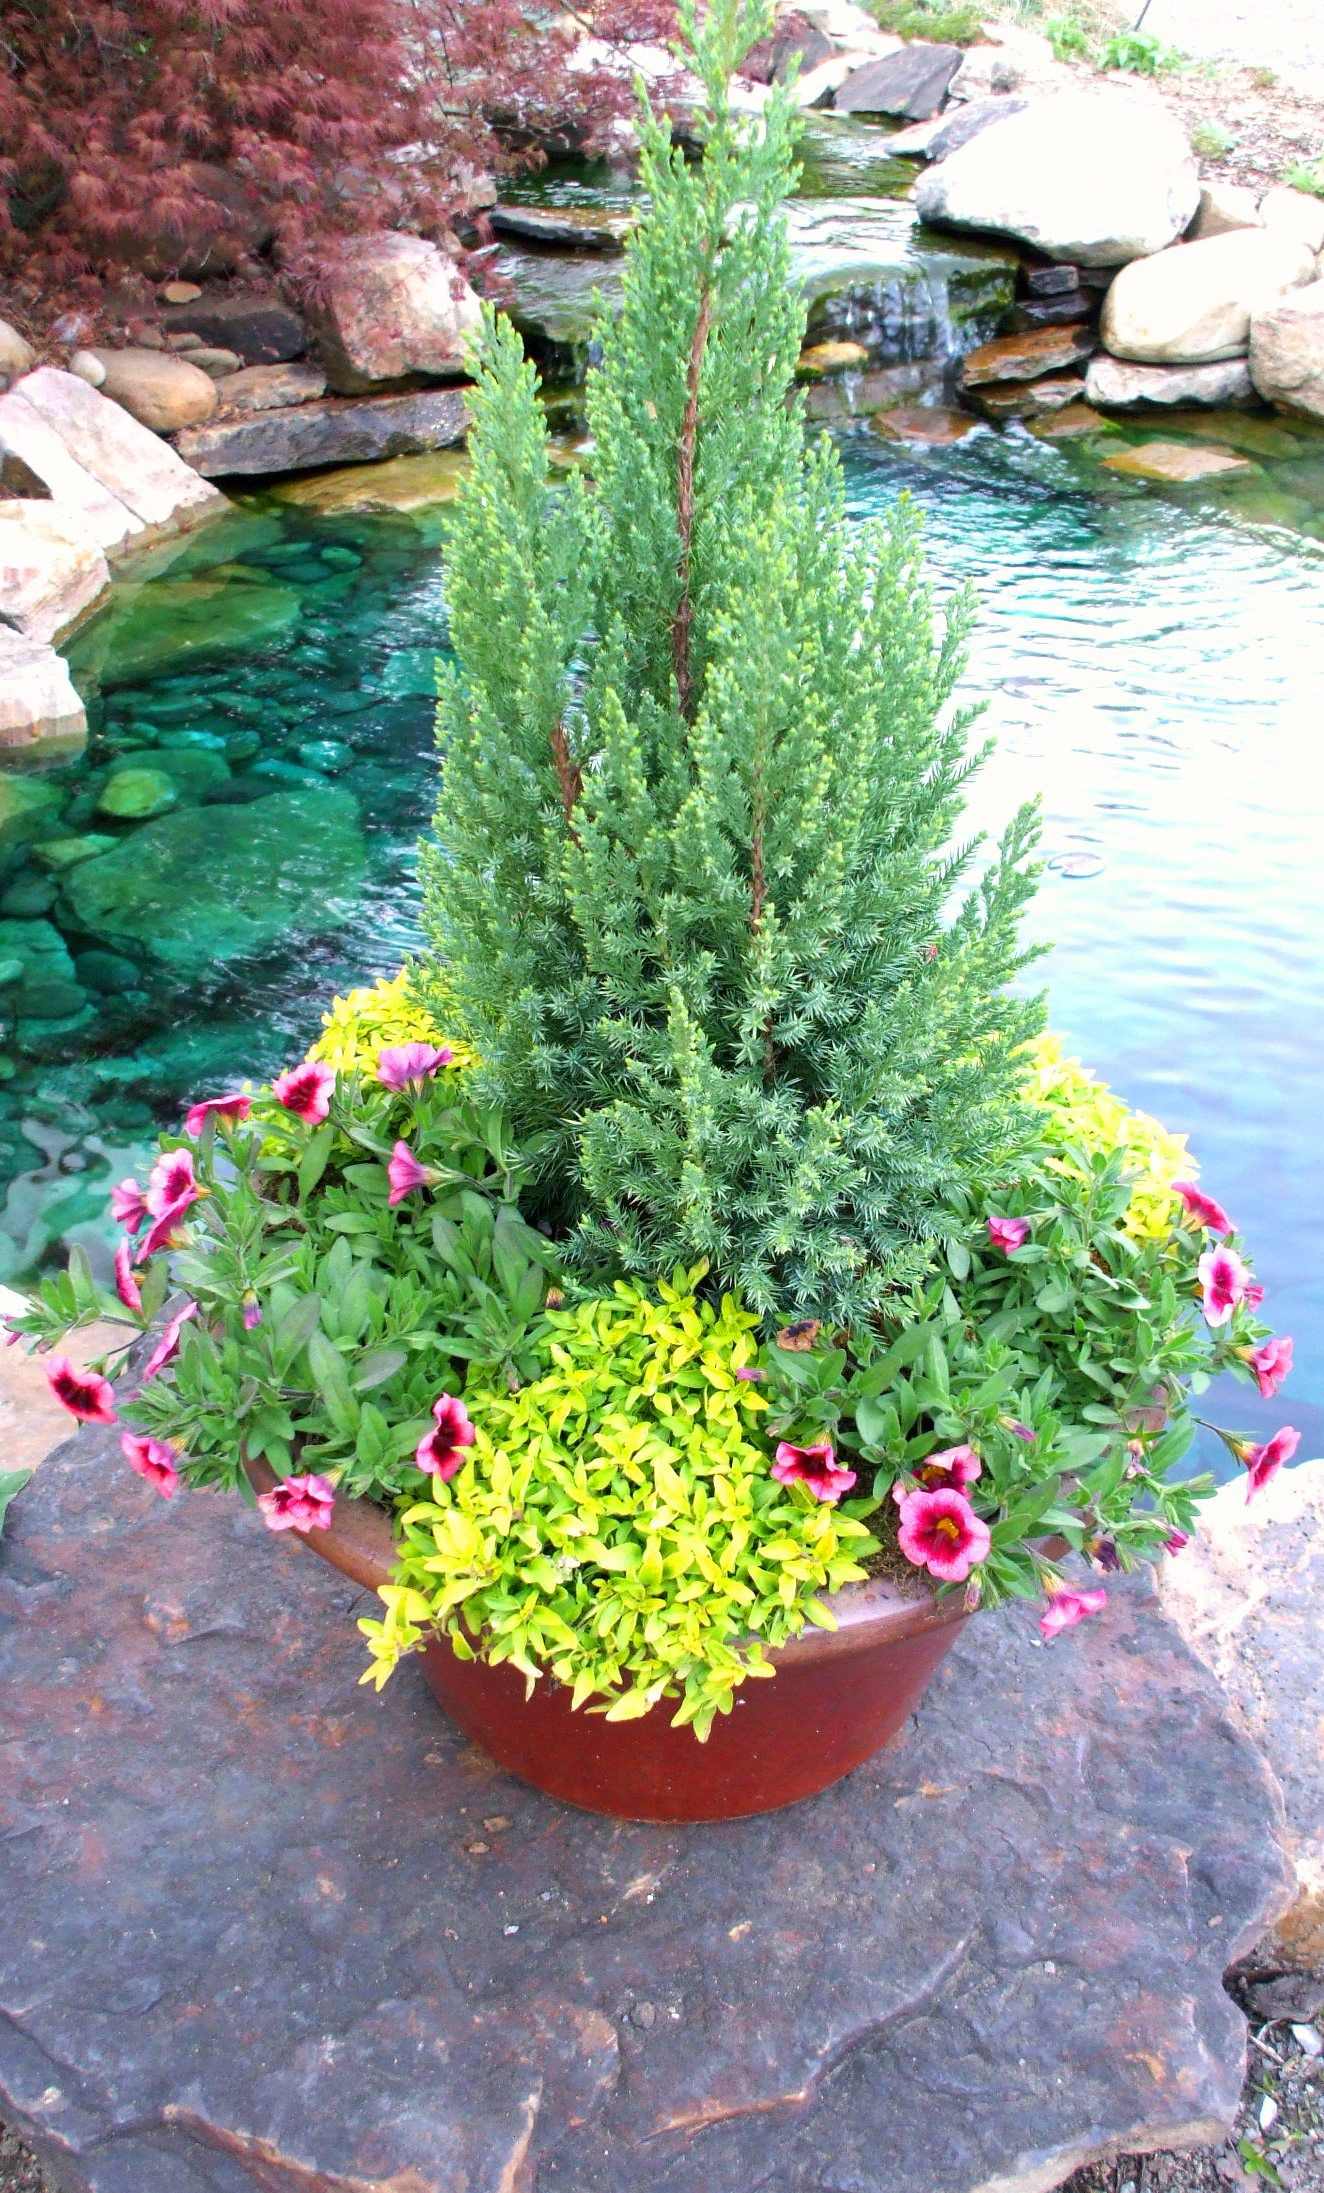 This Is A Good Idea Anchor The Evergreen And Change Out The Seasonal Flowers Container Gardening Potted Plants Outdoor Container Plants